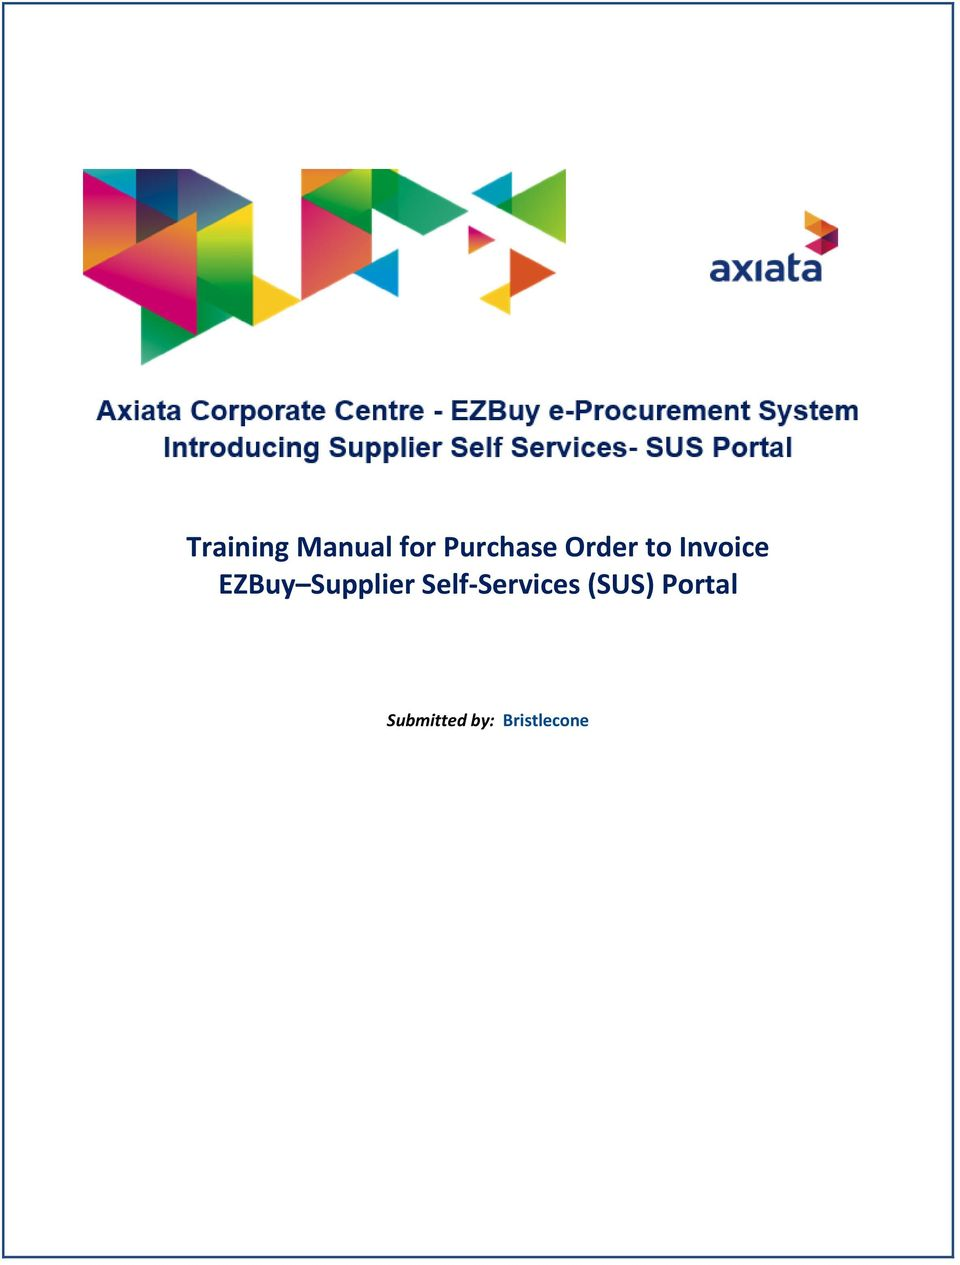 Supplier Self-Services (SUS)